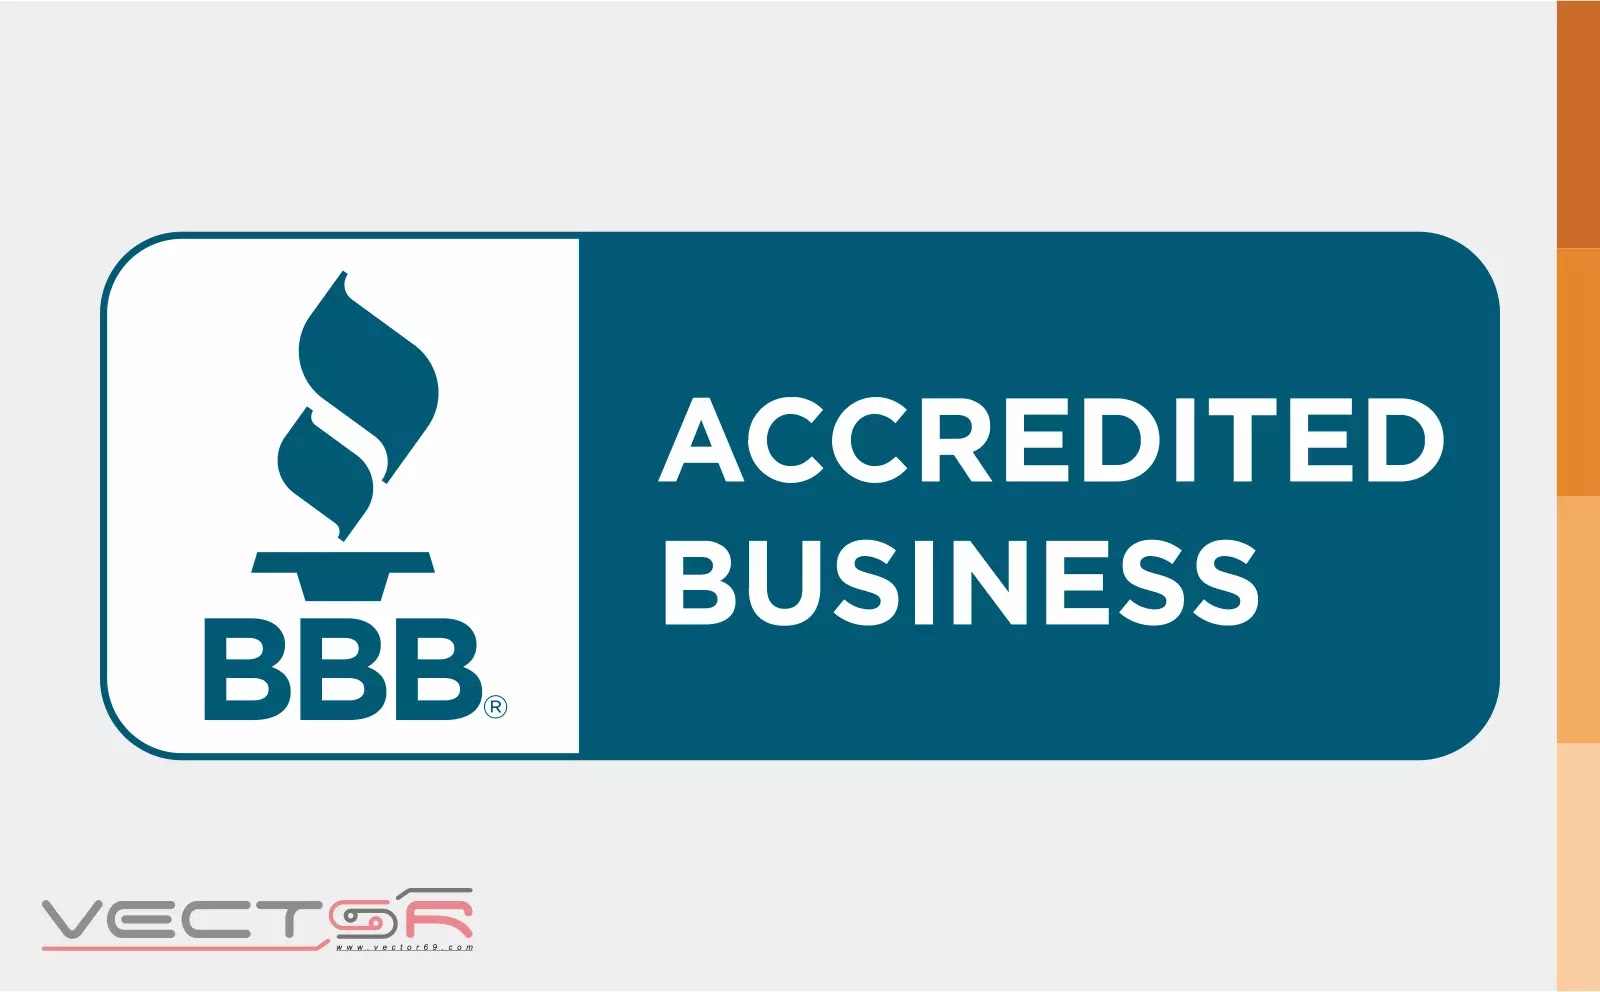 BBB Accredited Business Horizontal Seal - Download Vector File AI (Adobe Illustrator)